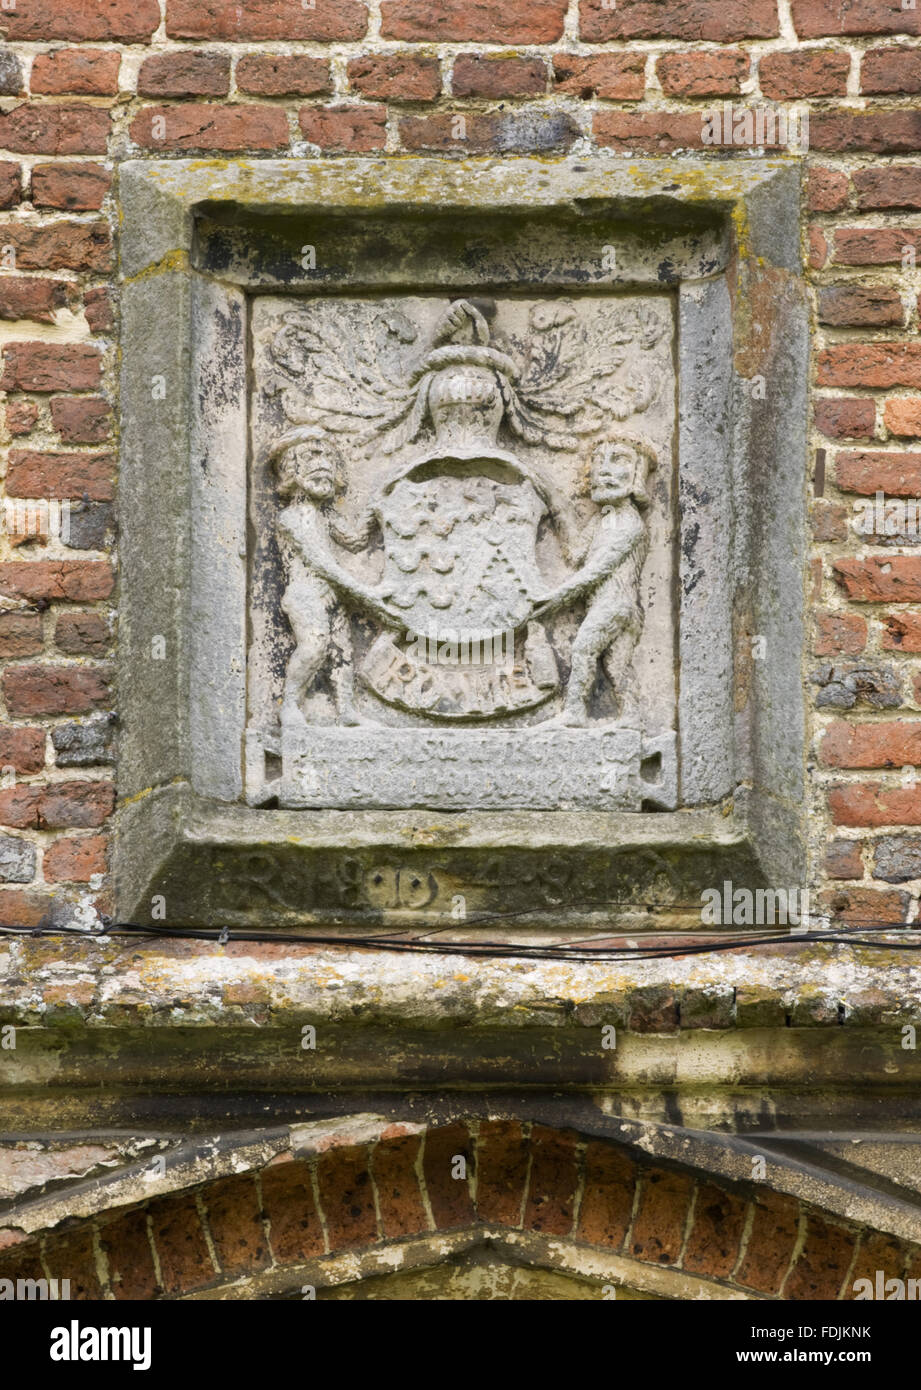 A stone sculptural panel with a coat of arms flanked by attendant figures. - Stock Image